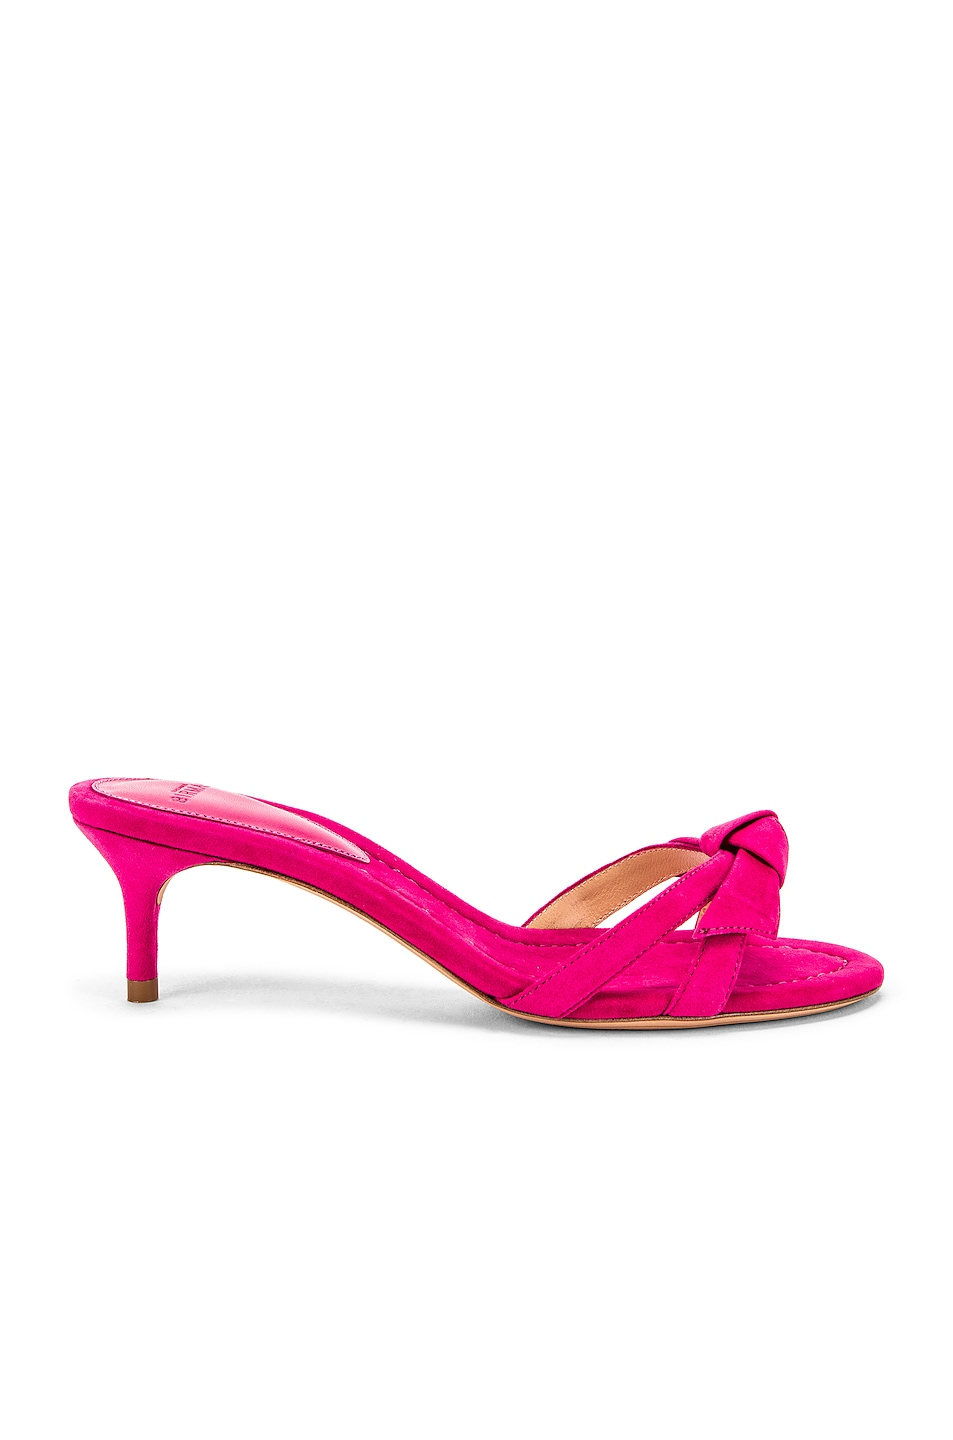 Image 1 of Alexandre Birman Cocktail Clarita Kitten Heel in Raspberry